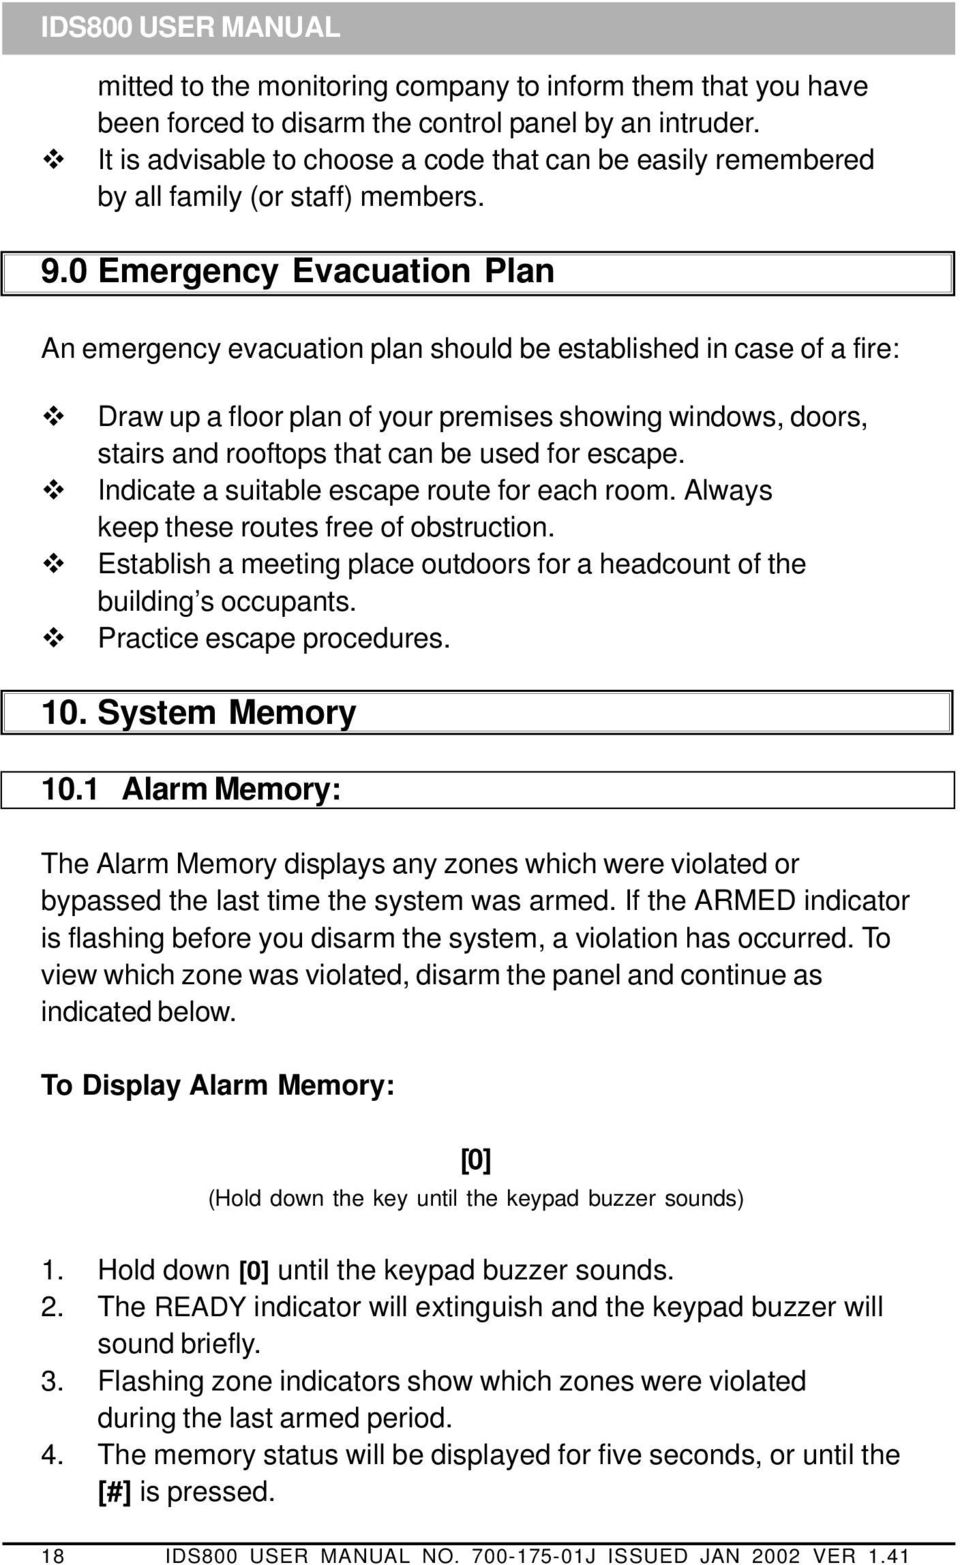 0 Emergency Evacuation Plan An emergency evacuation plan should be established in case of a fire: Draw up a floor plan of your premises showing windows, doors, stairs and rooftops that can be used